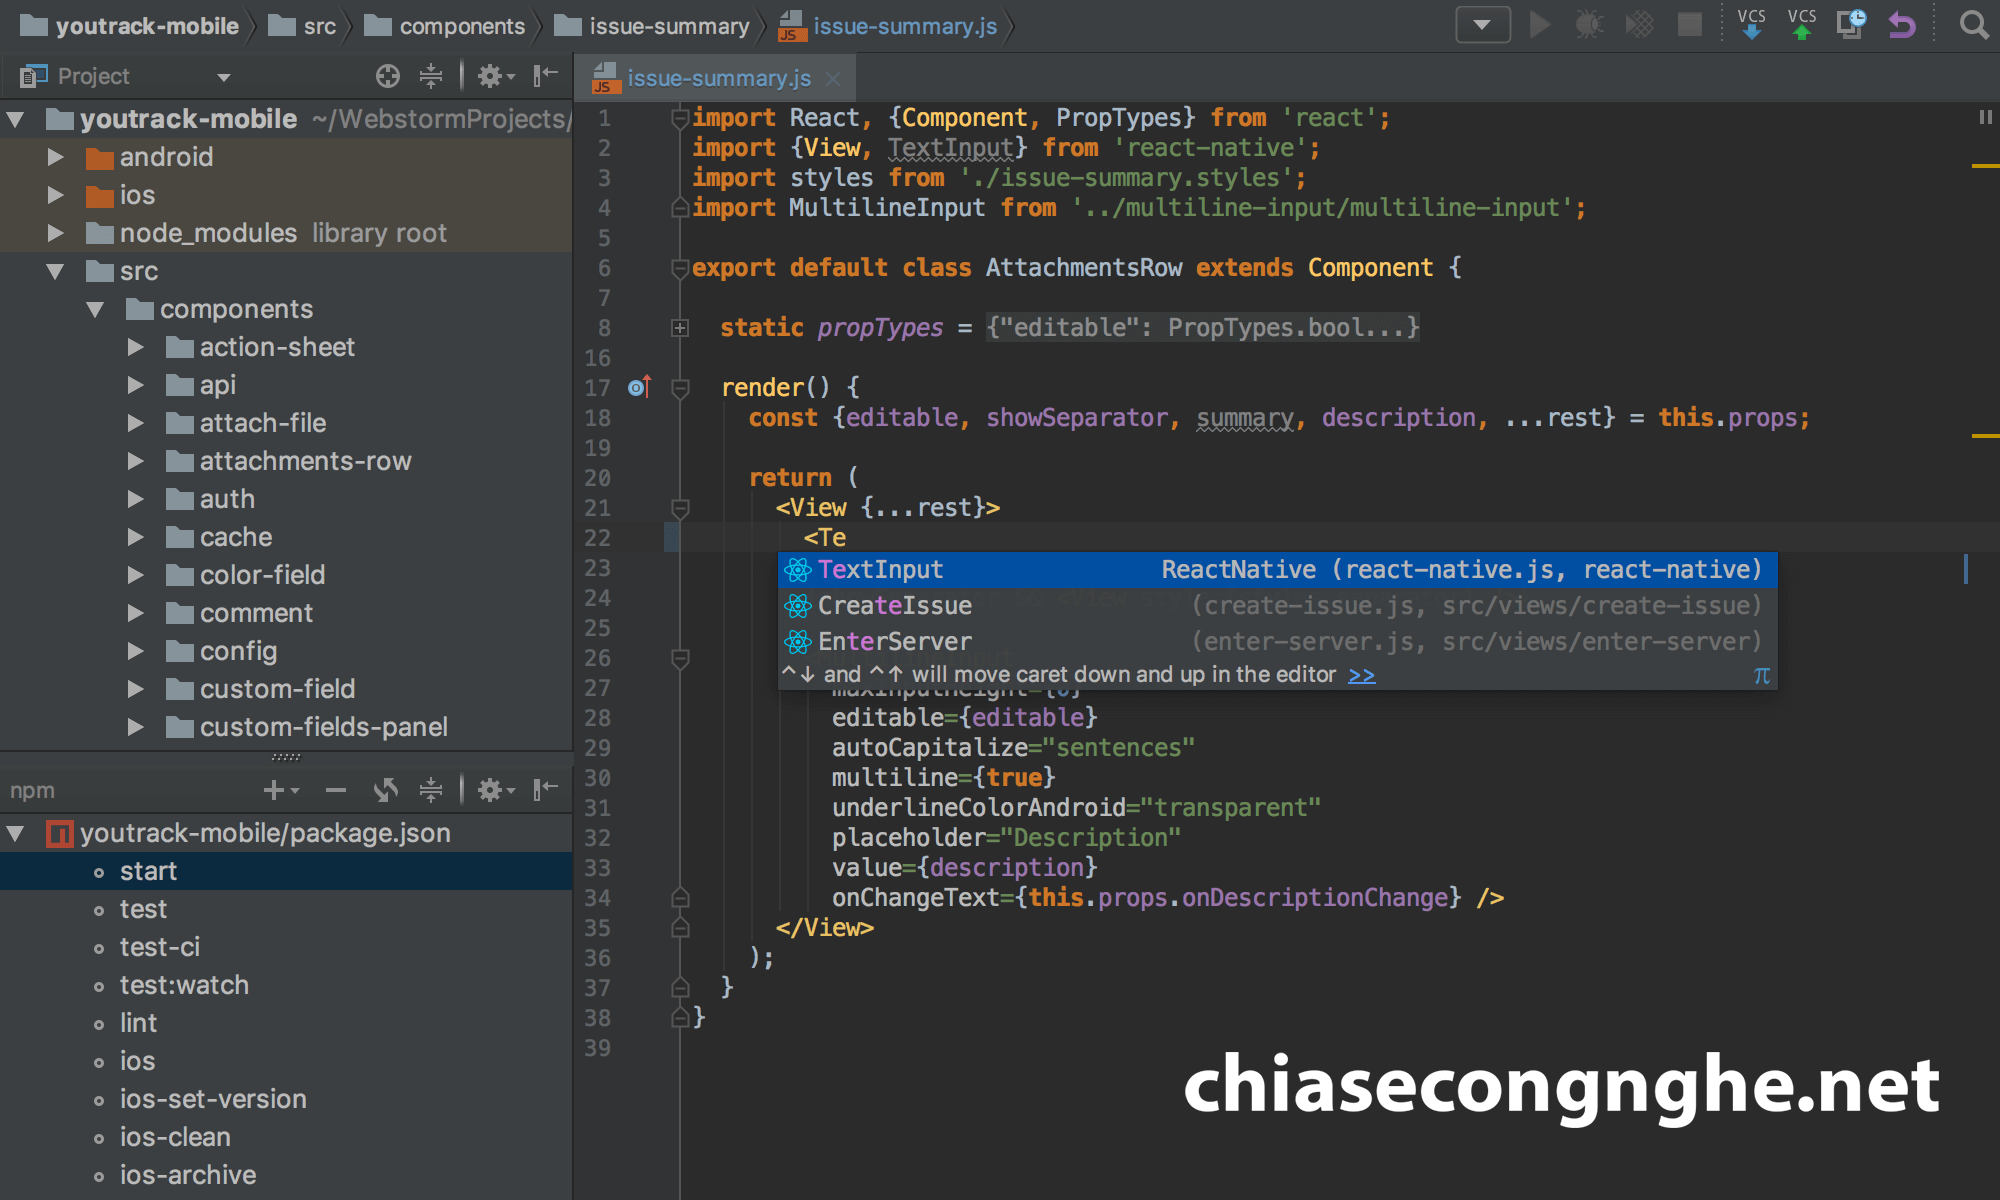 JetBrains WebStorm 2019 License key